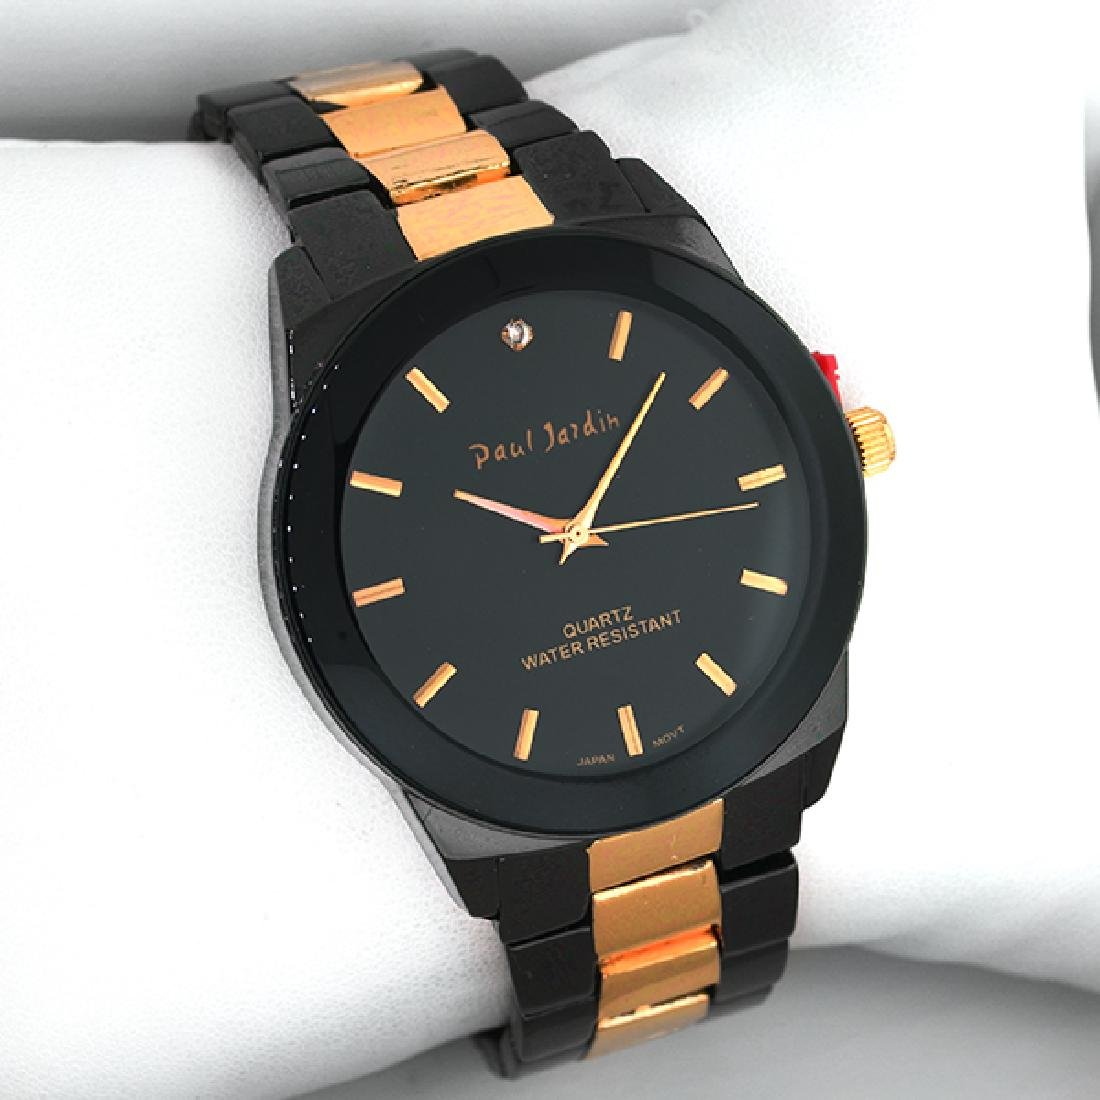 Paul Jardin  Men's Round Black and Copper Watch